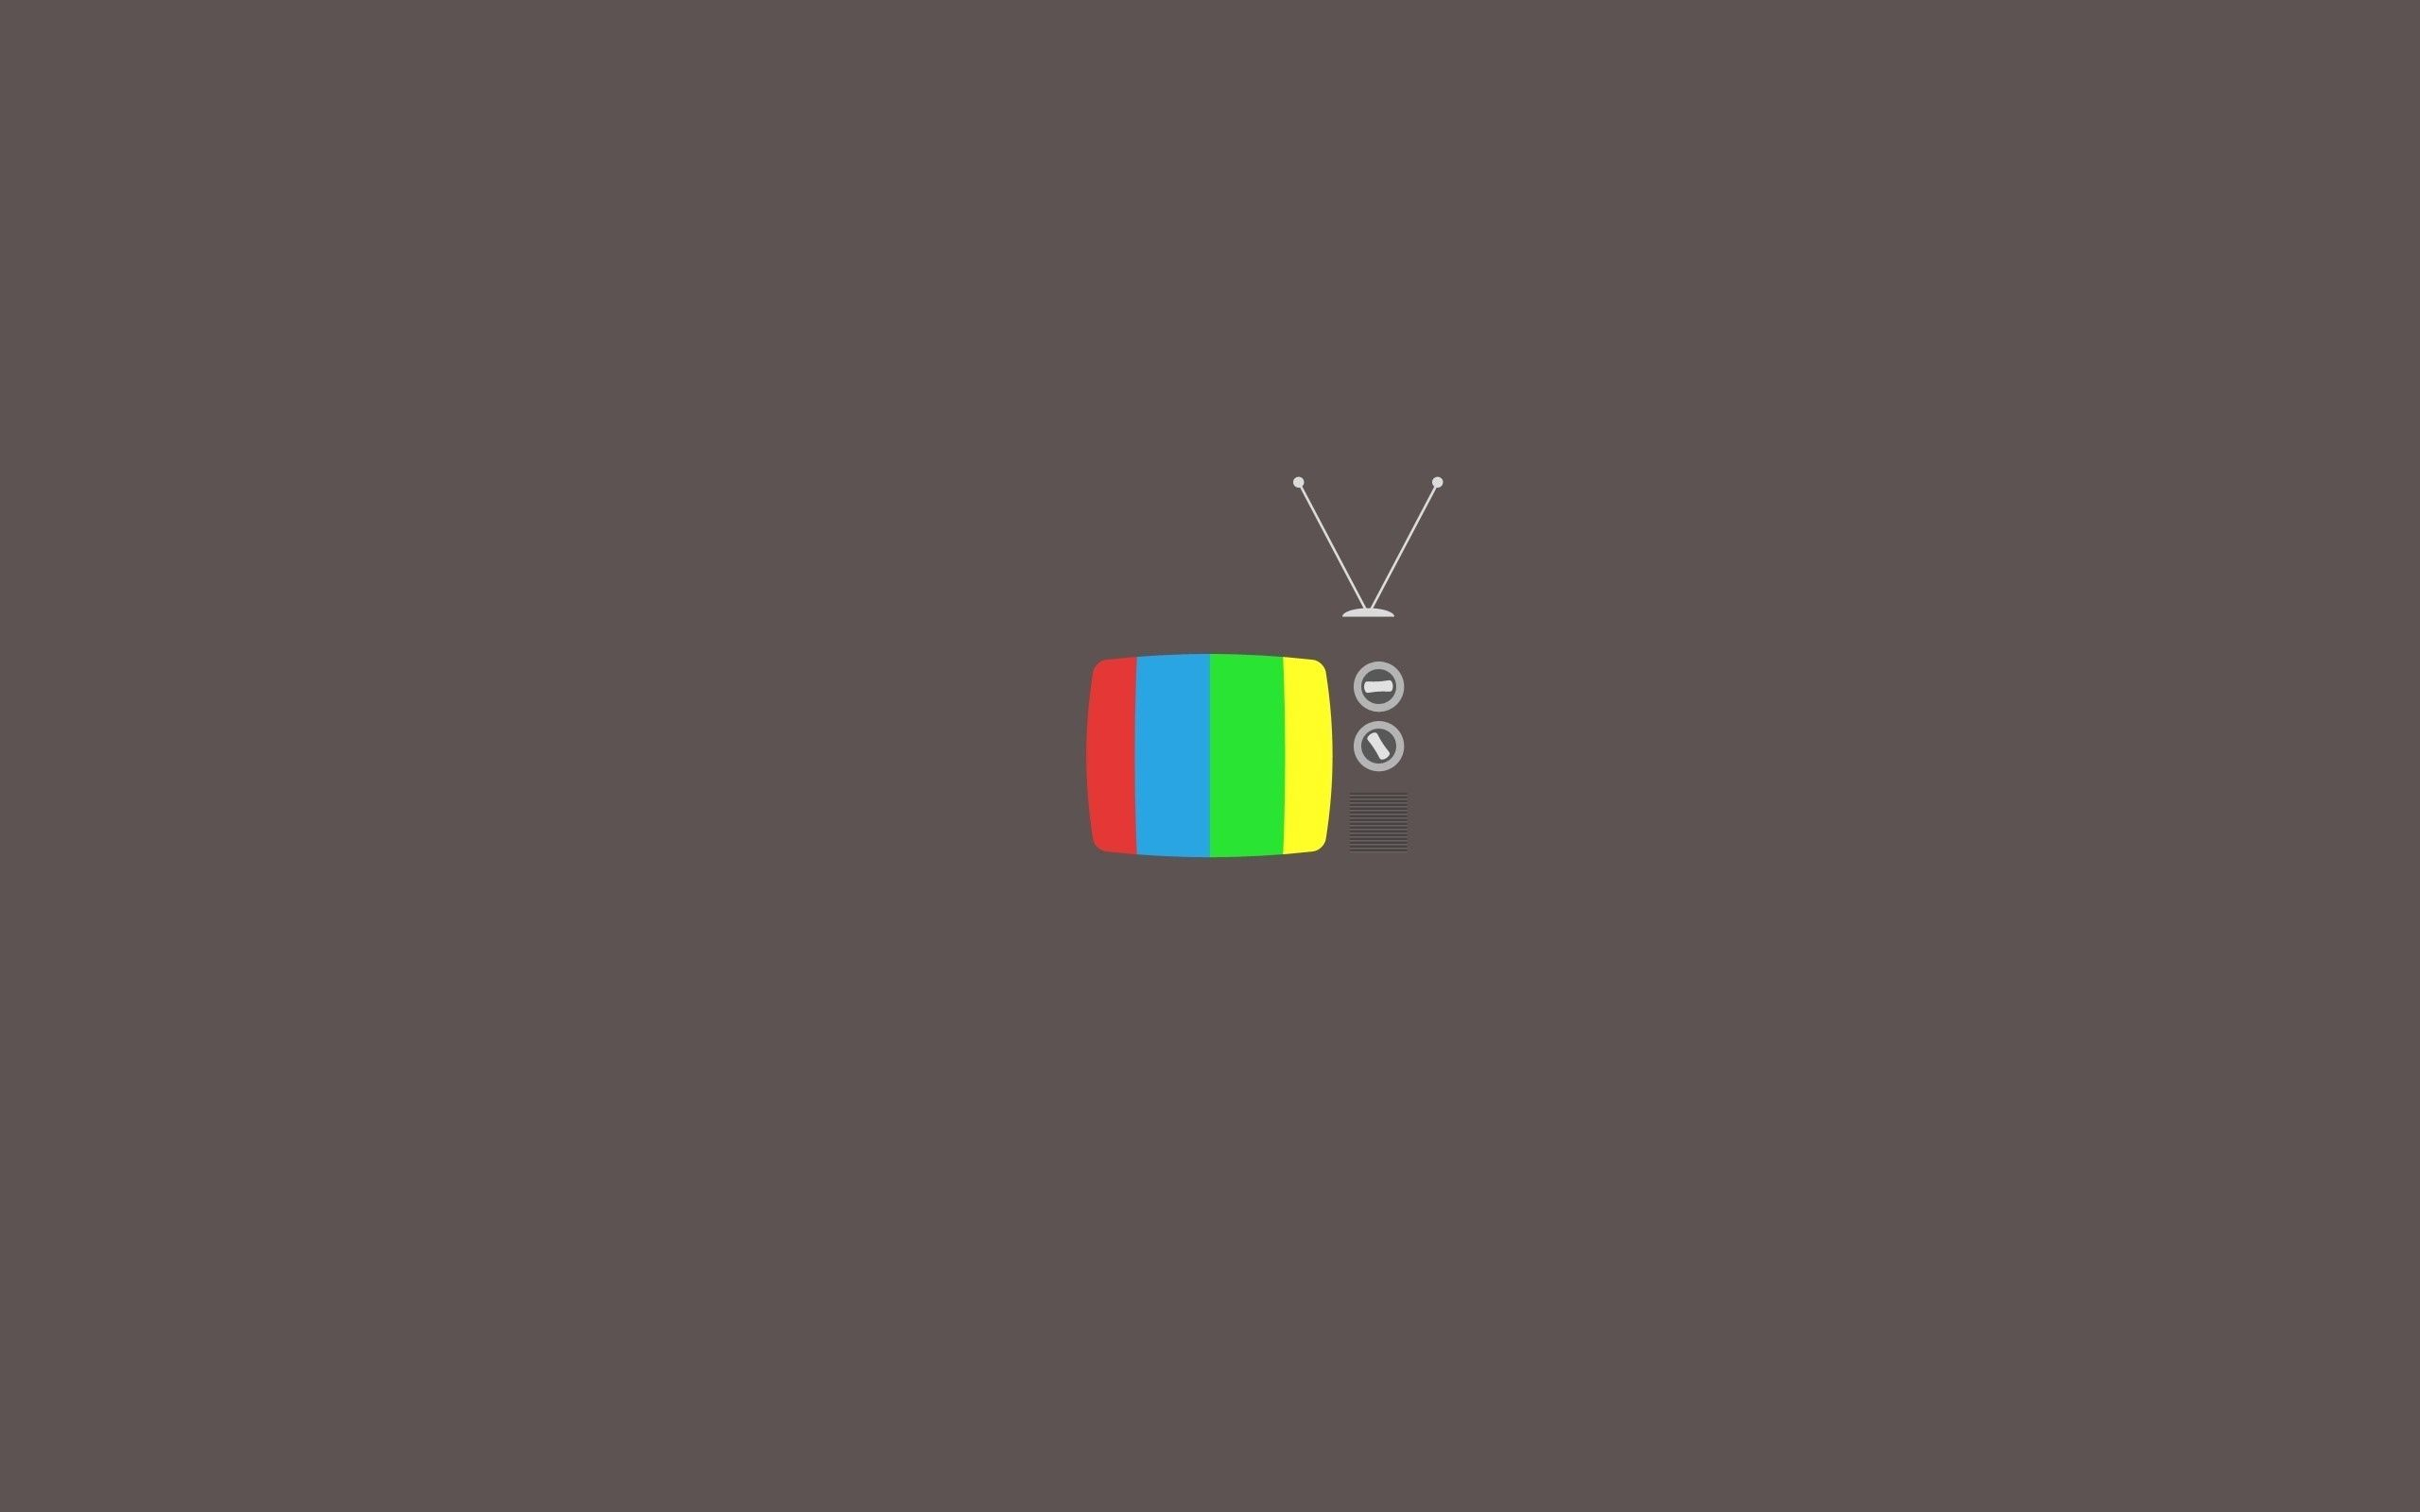 64084 download wallpaper Minimalism, Buttons, Antenna, Screen, Television, Television Set, Centre, Center screensavers and pictures for free